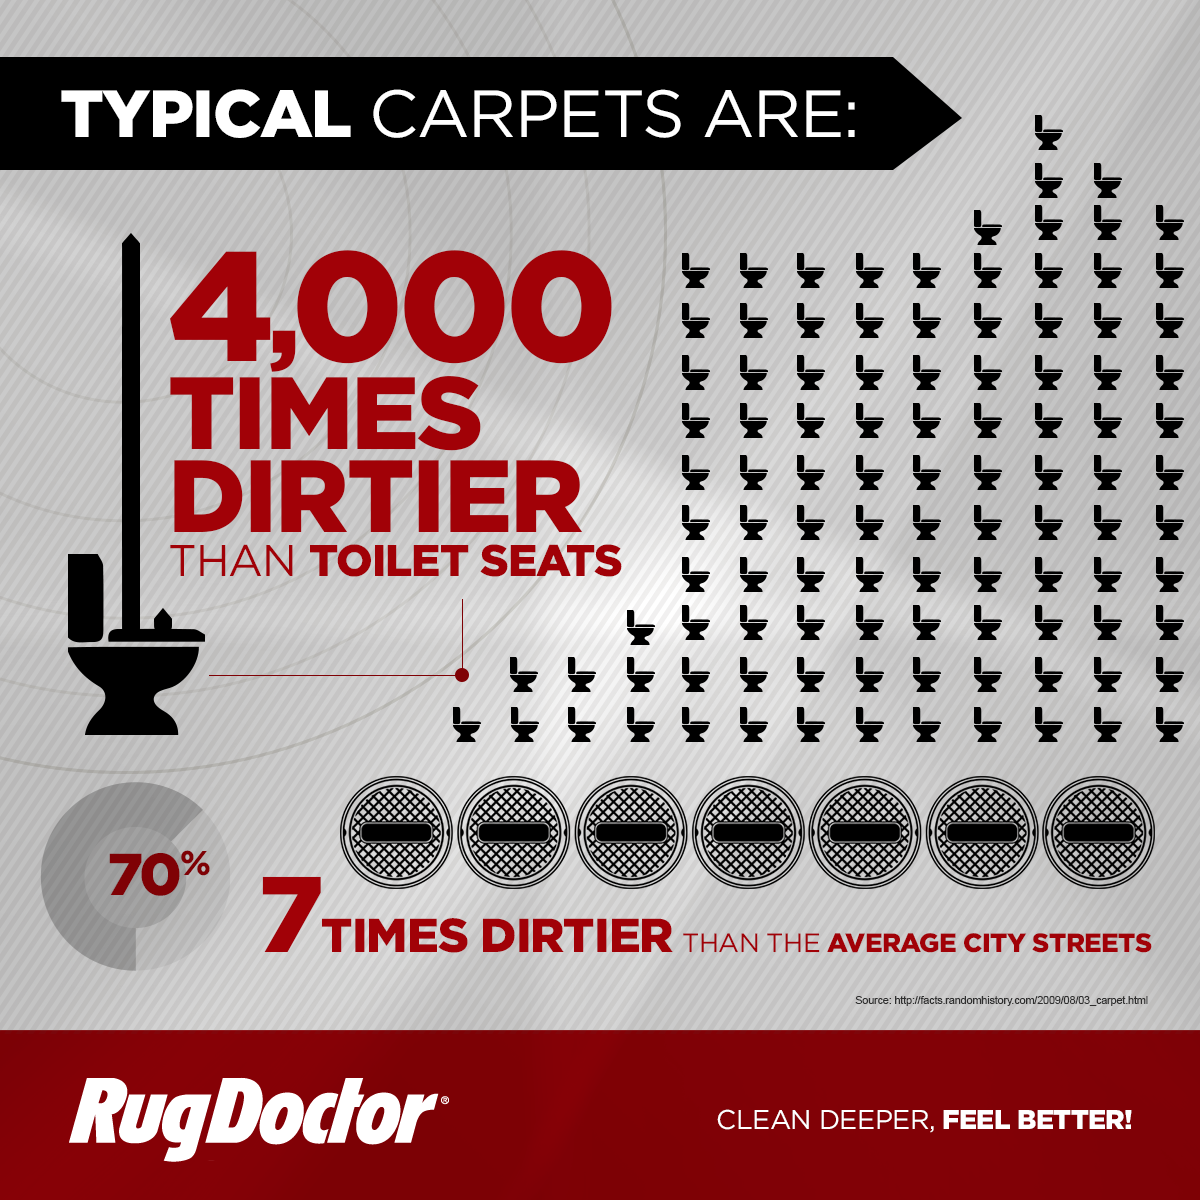 Carpets Are Typically 4 000 Times Dirtier Than Toilet